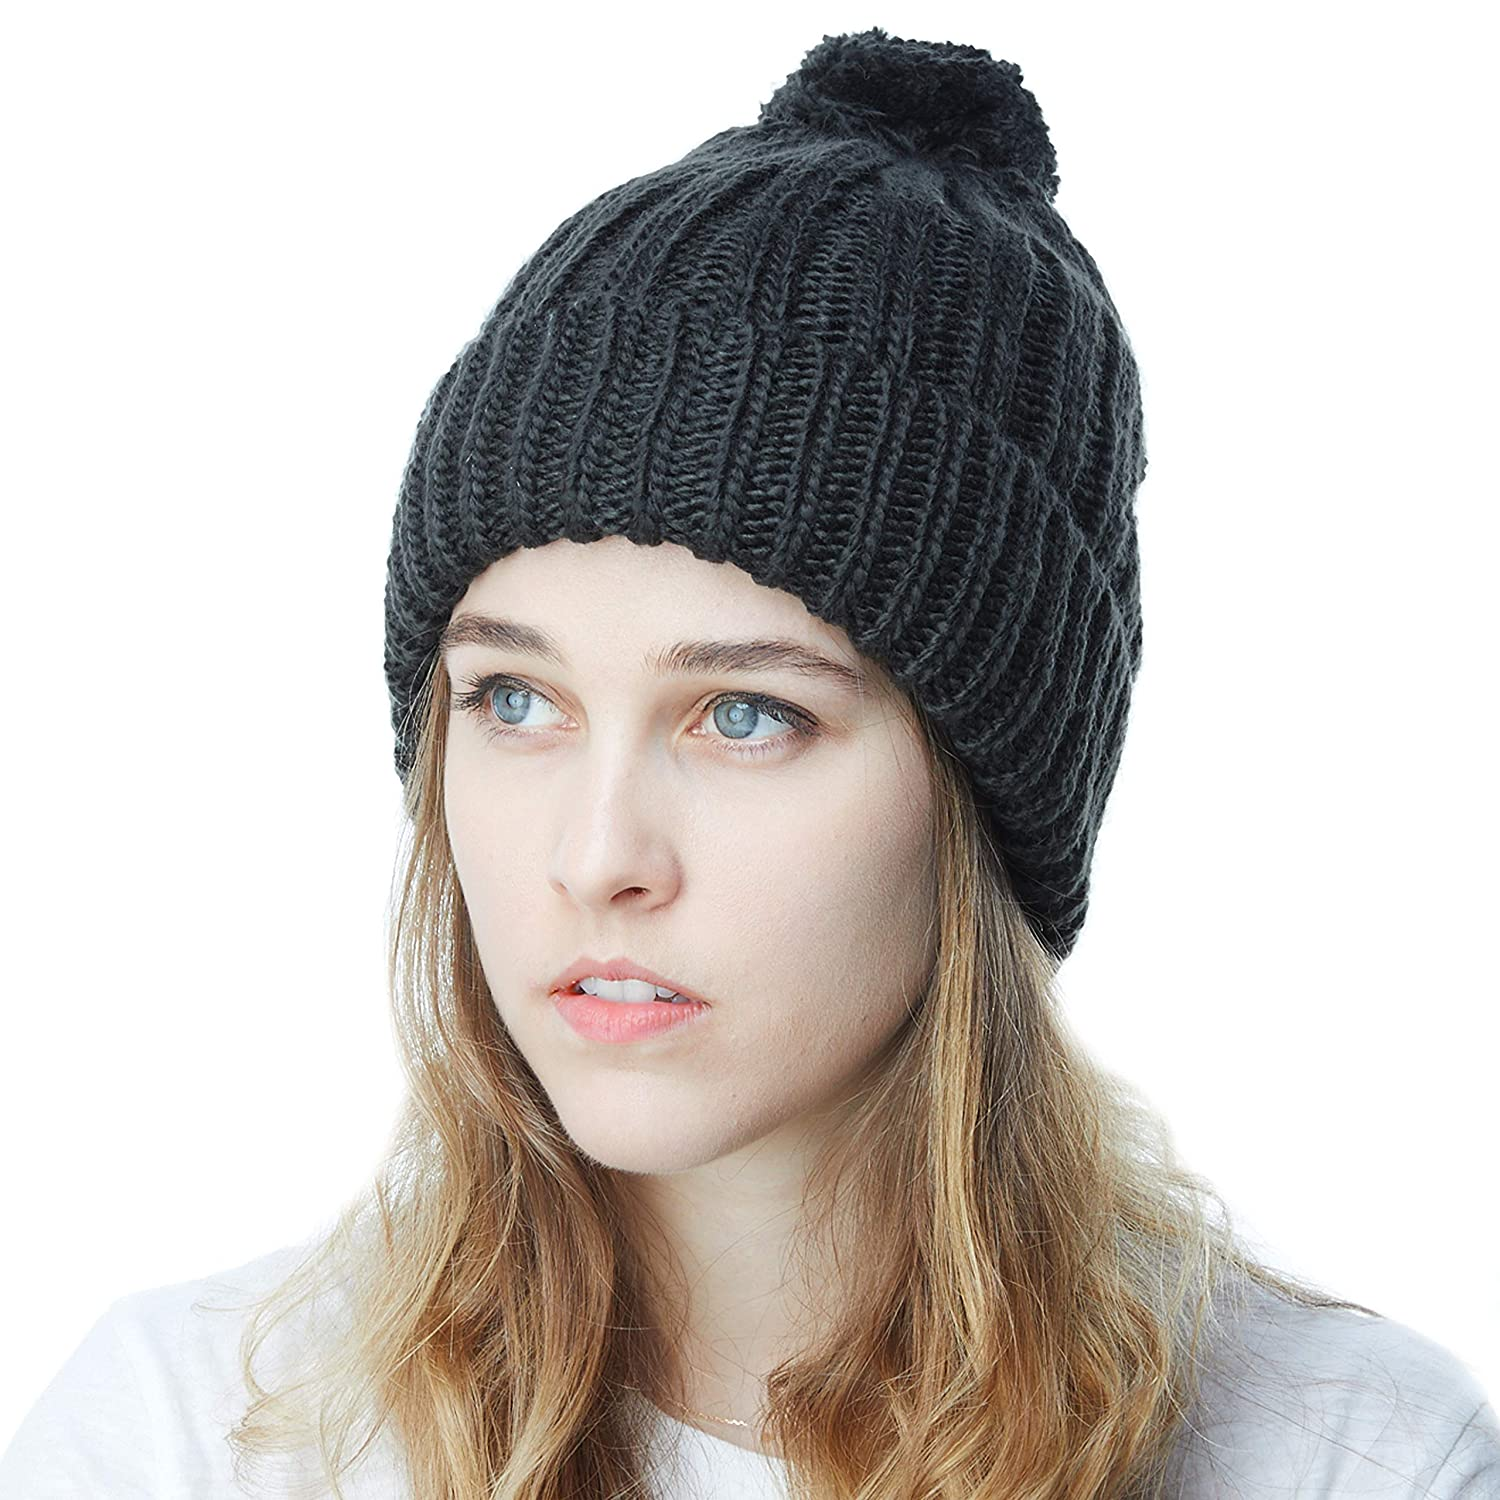 73e86891218b2 THE HAT DEPOT Winter Unisex Soft Warm Beanie Sherpa Lined Pom Pom Beanie  Skully Hat (Black) at Amazon Women s Clothing store